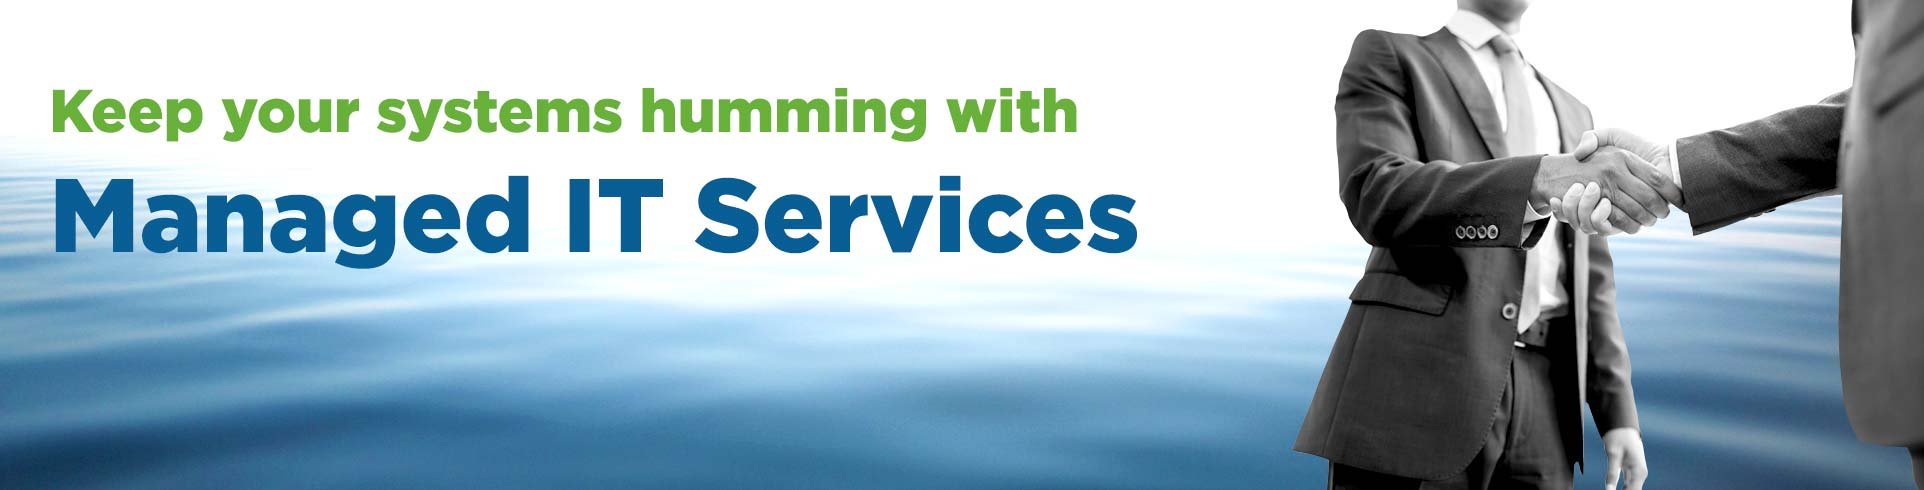 4473-managed-it-services-hero